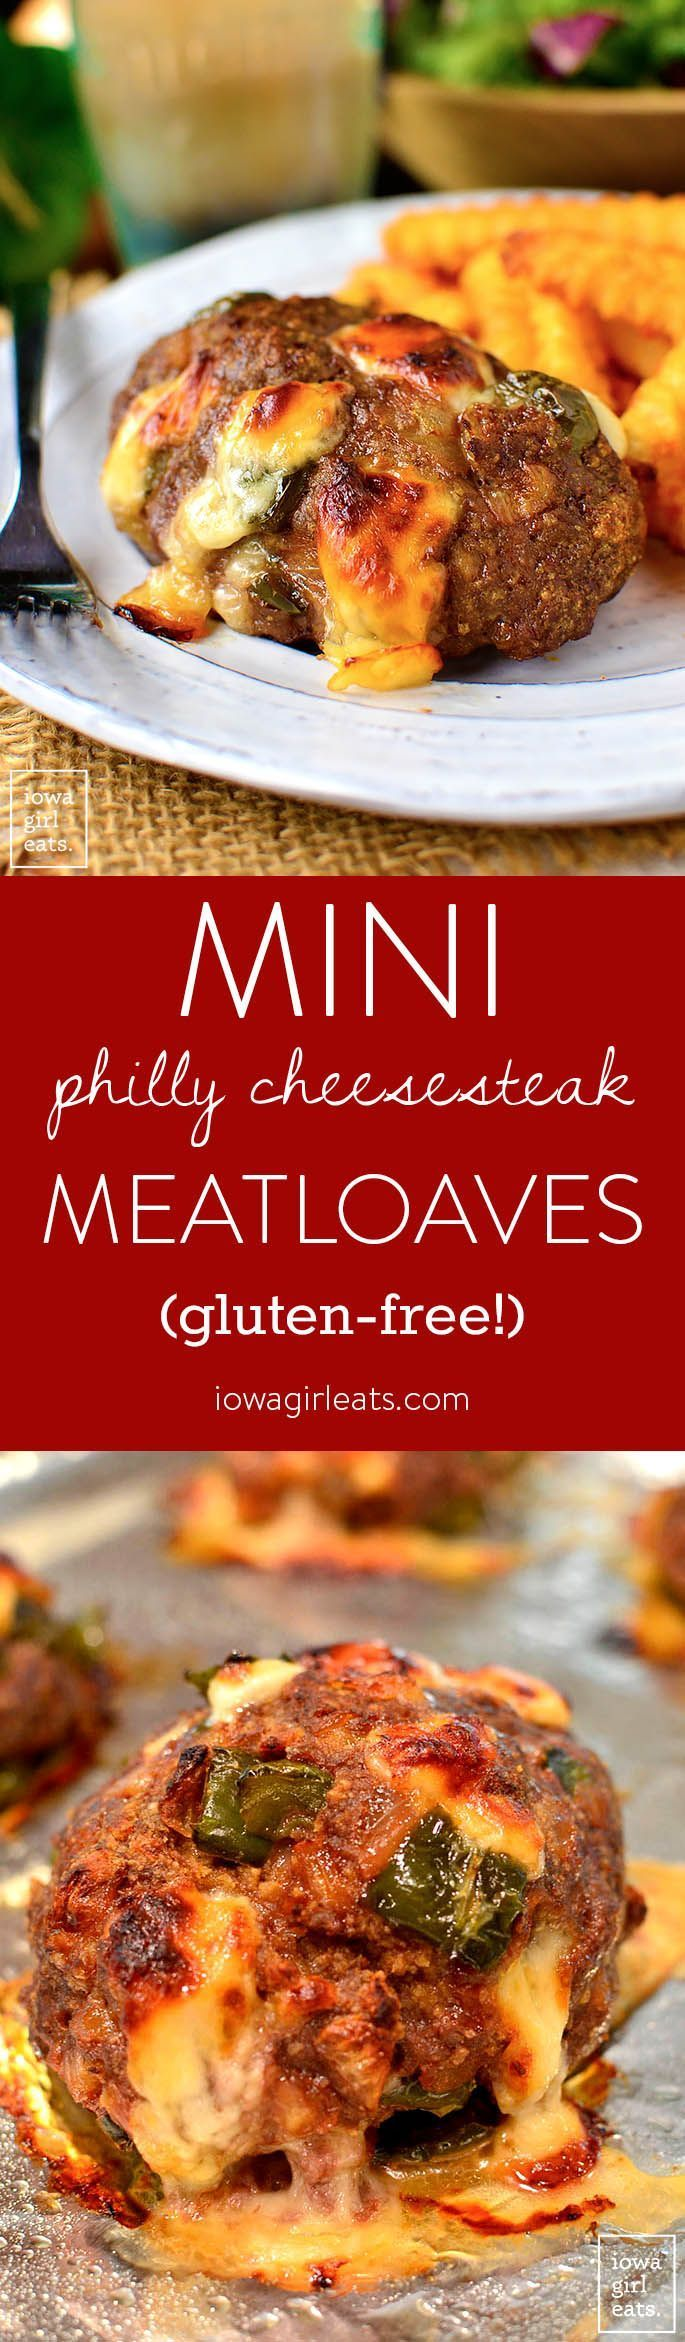 25+ Best Ideas about Best Philly Cheesesteak on Pinterest ...